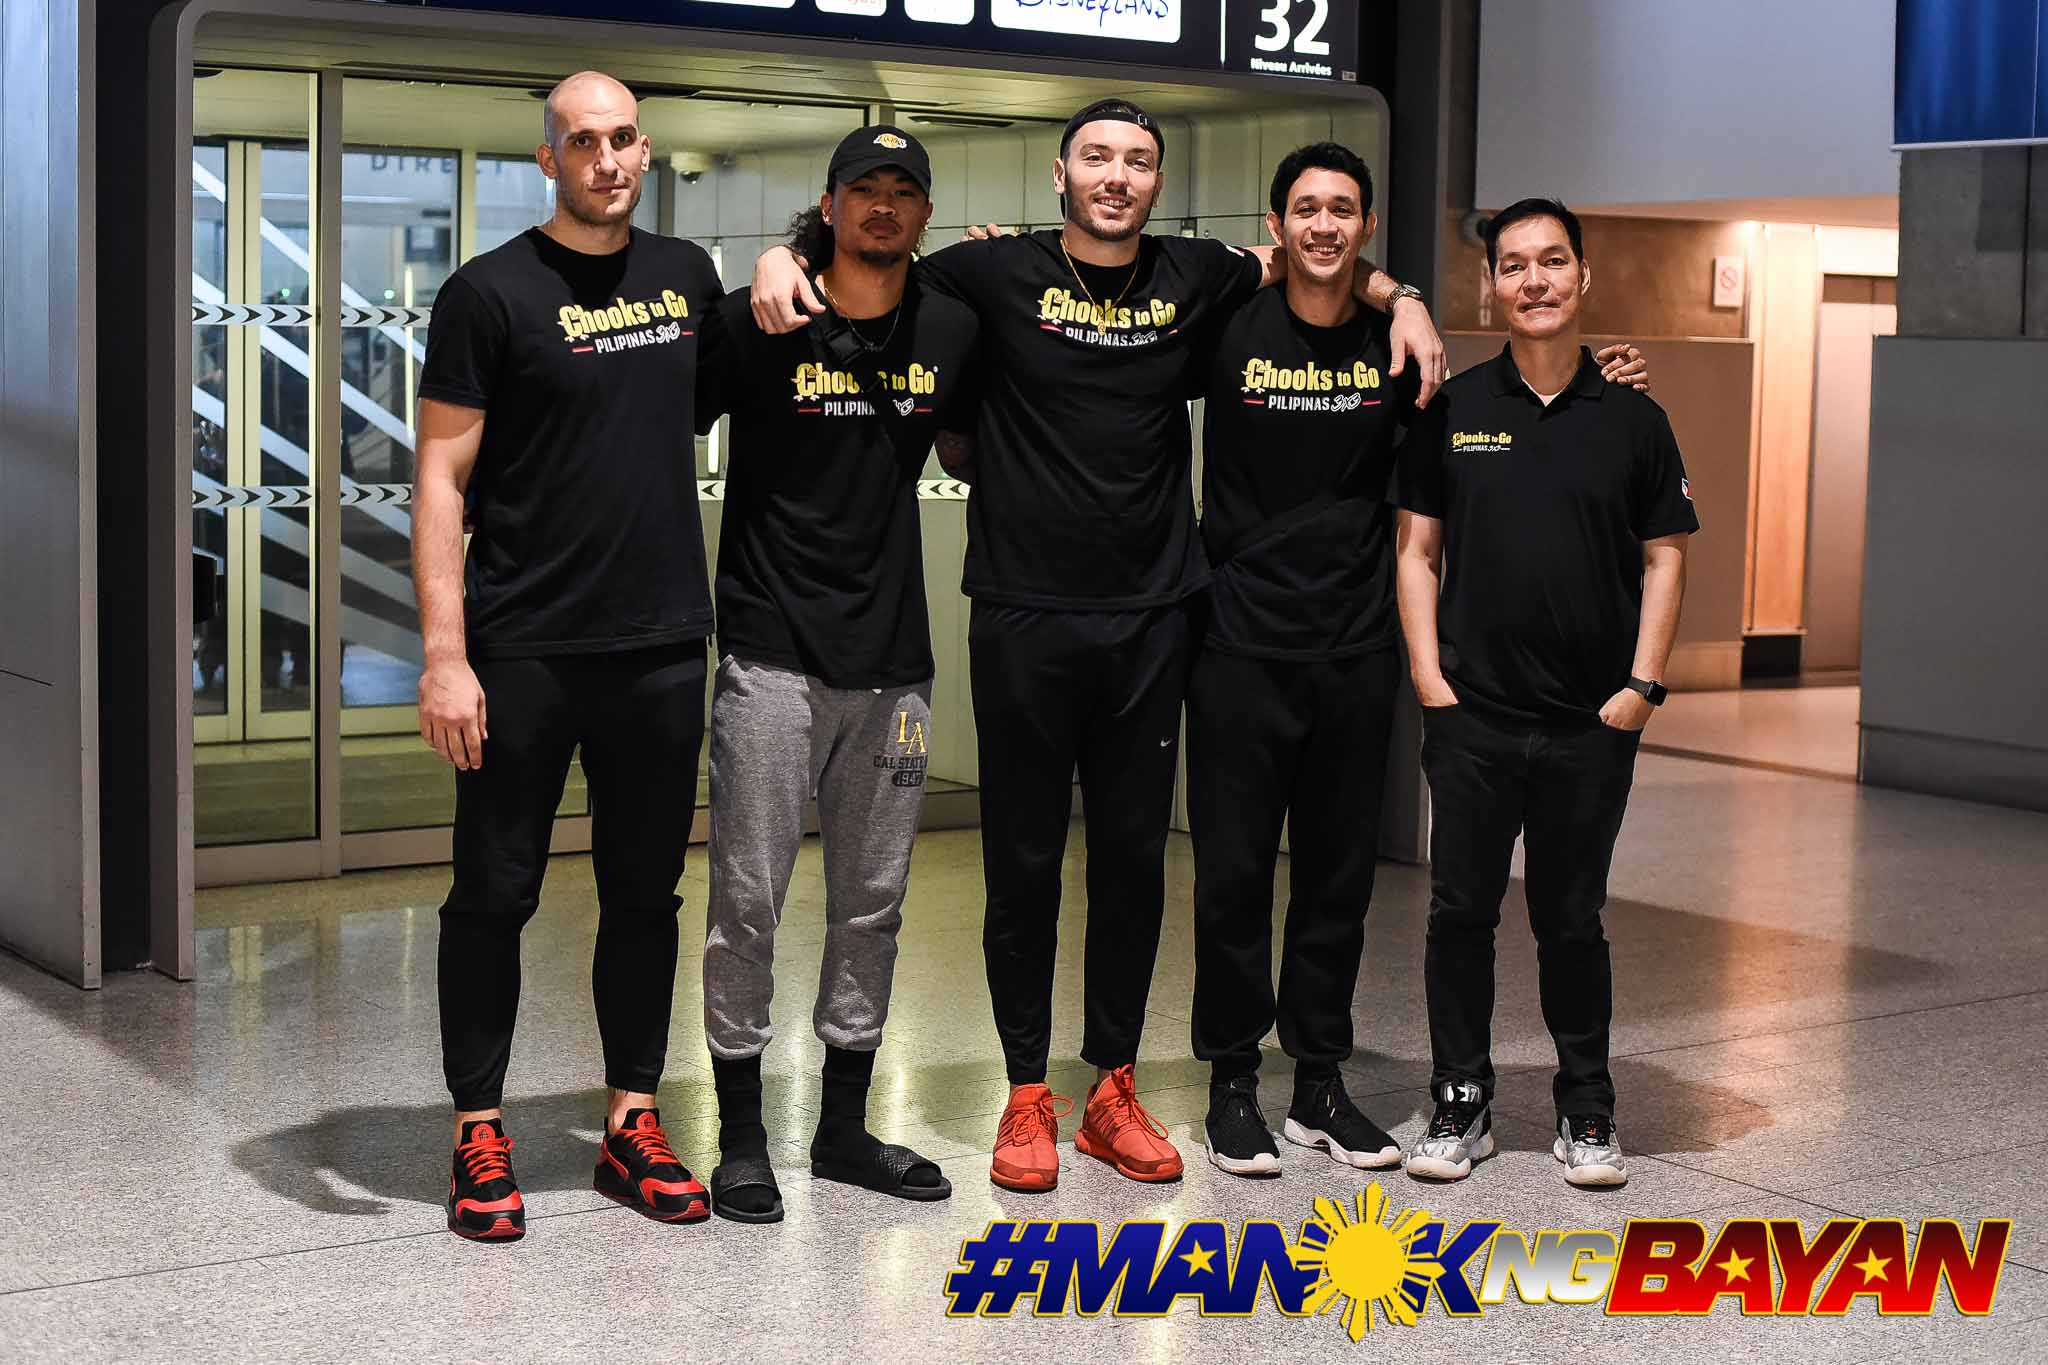 Tiebreaker Times Pressure on for Pasig Chooks in Poitiers Challenger 3x3 Basketball Chooks-to-Go Pilipinas 3x3 News  Taylor Statham Ronald Mascarinas Nikola Pavlovic Lausanne Joshua Munzon Gold's Gym-Pasig Kings Dylan Ababou 2019 Poitiers Challenger 2019 Chooks-to-Go Pilipinas 3x3 Season